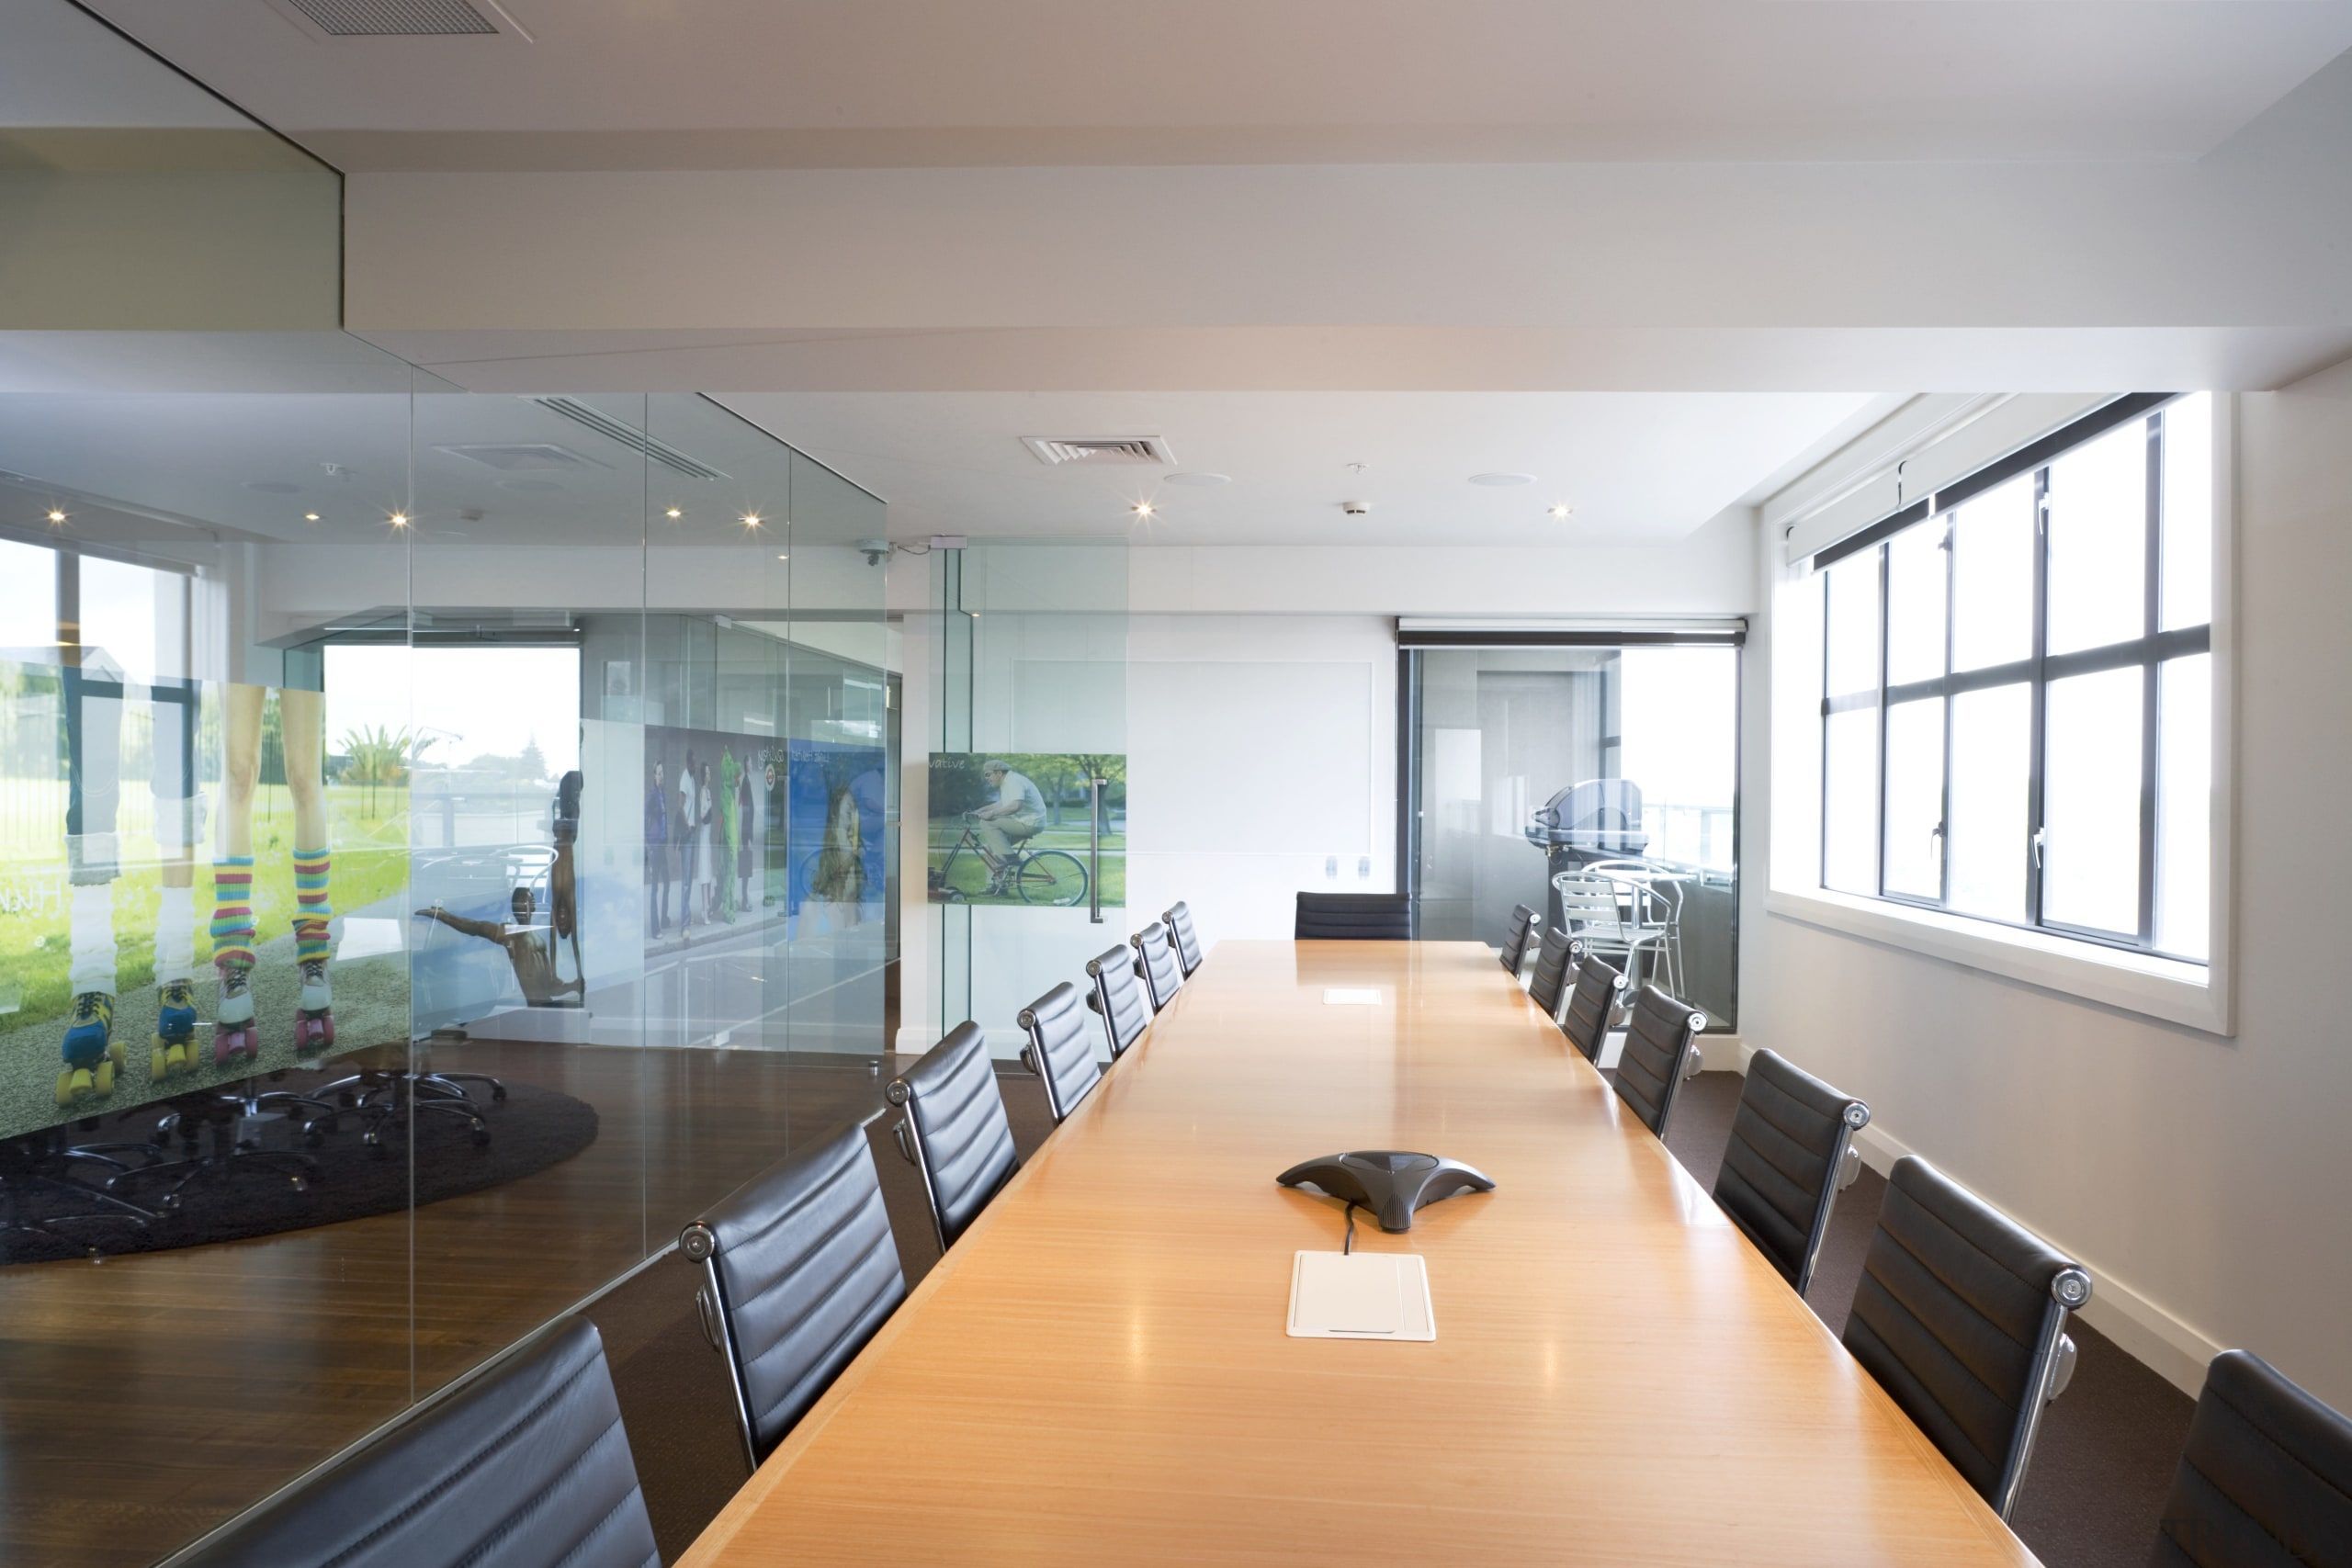 Contrasting textures enliven the recpetion area of the architecture, ceiling, conference hall, daylighting, glass, house, interior design, real estate, window, gray